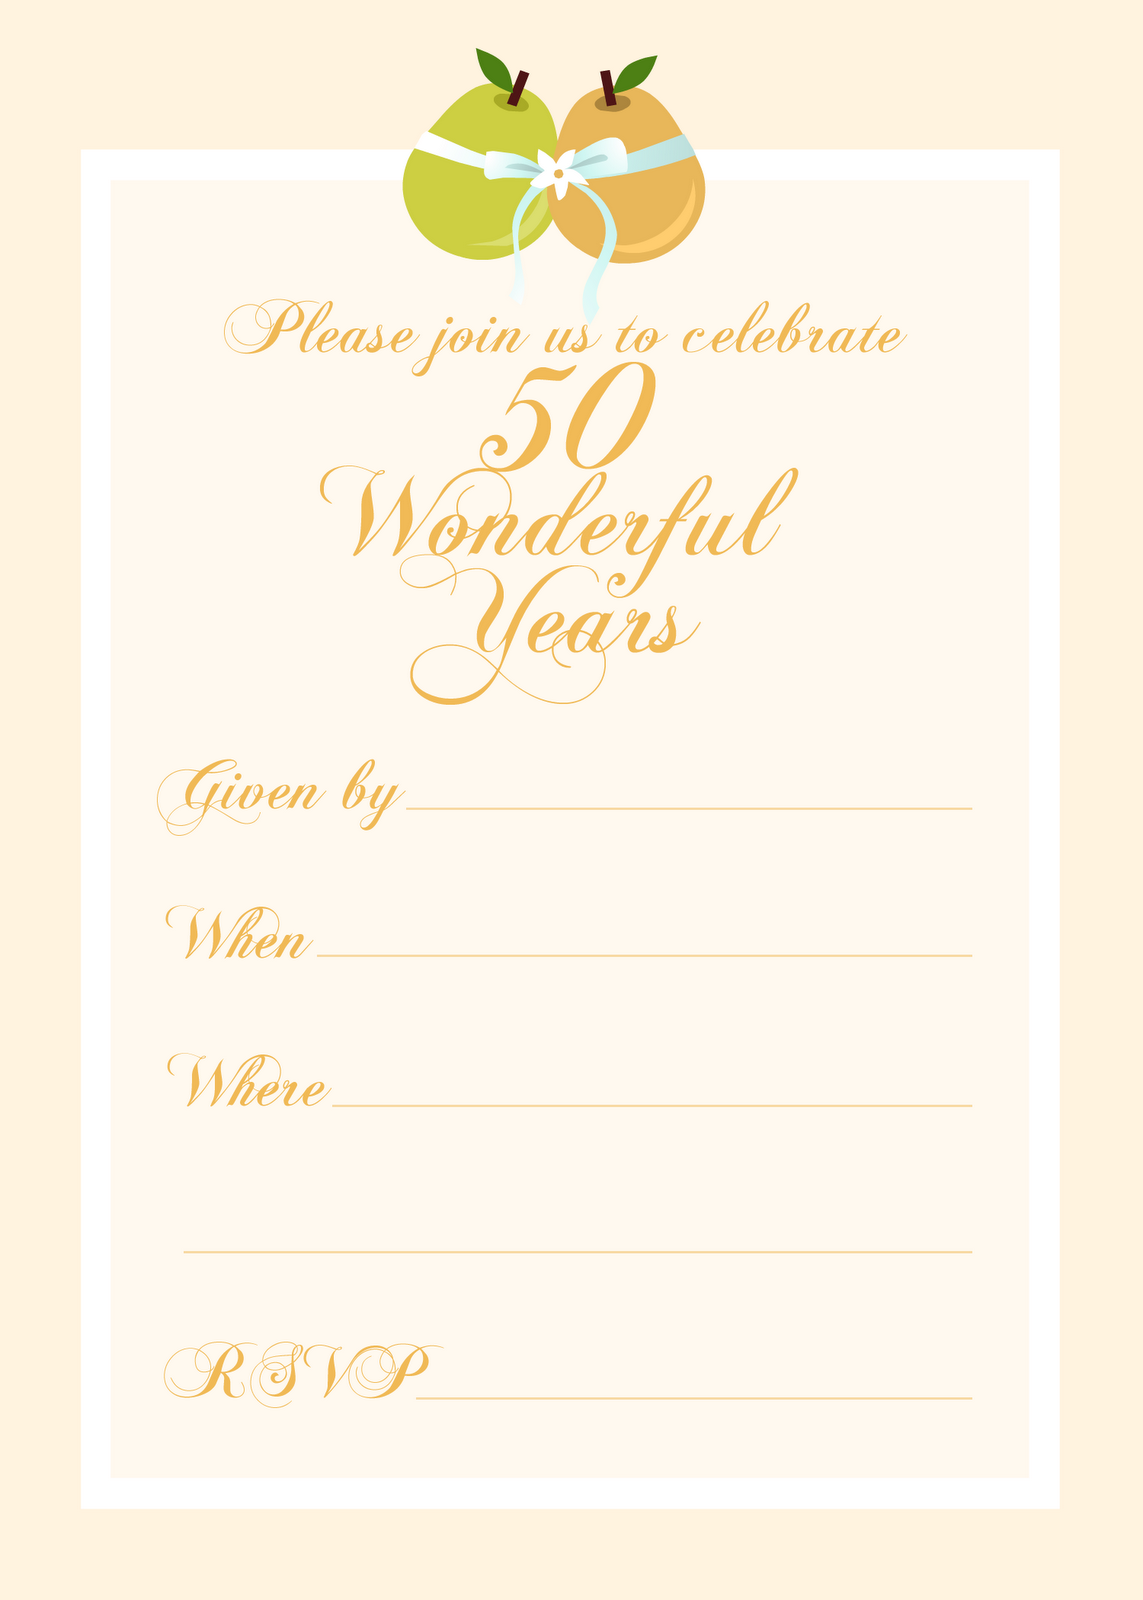 Free printable party invitations free 50th wedding for Template for 50th birthday invitations free printable